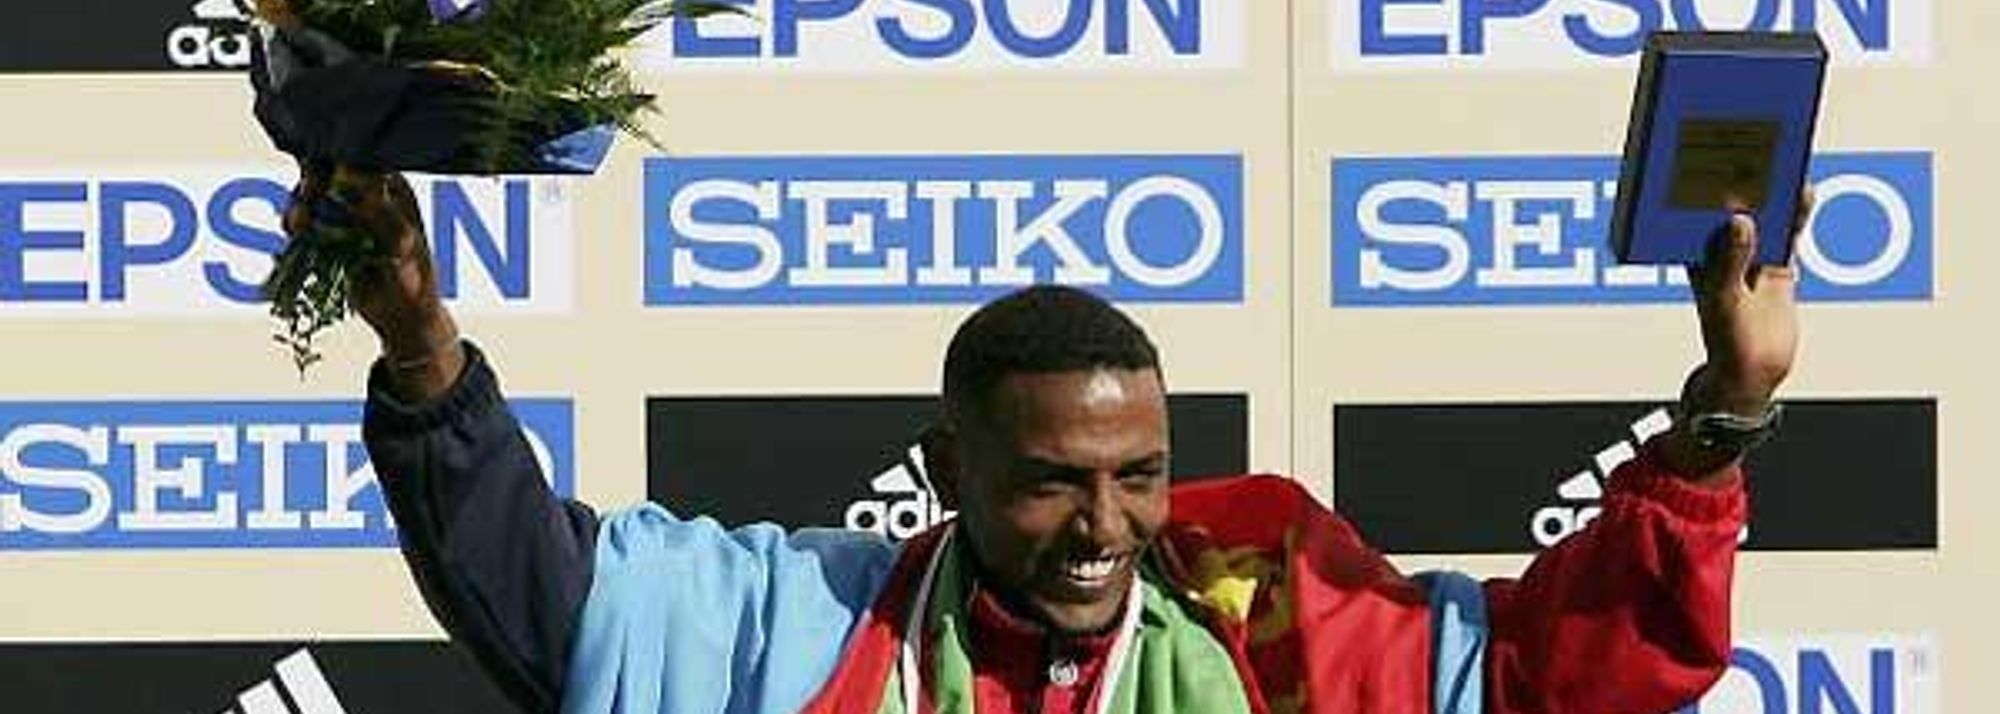 After winning the men's title at the inaugural IAAF World Road Running Championship, Eritrea's Zersenay Tadesse was inundated with questions about when he will run his first marathon.